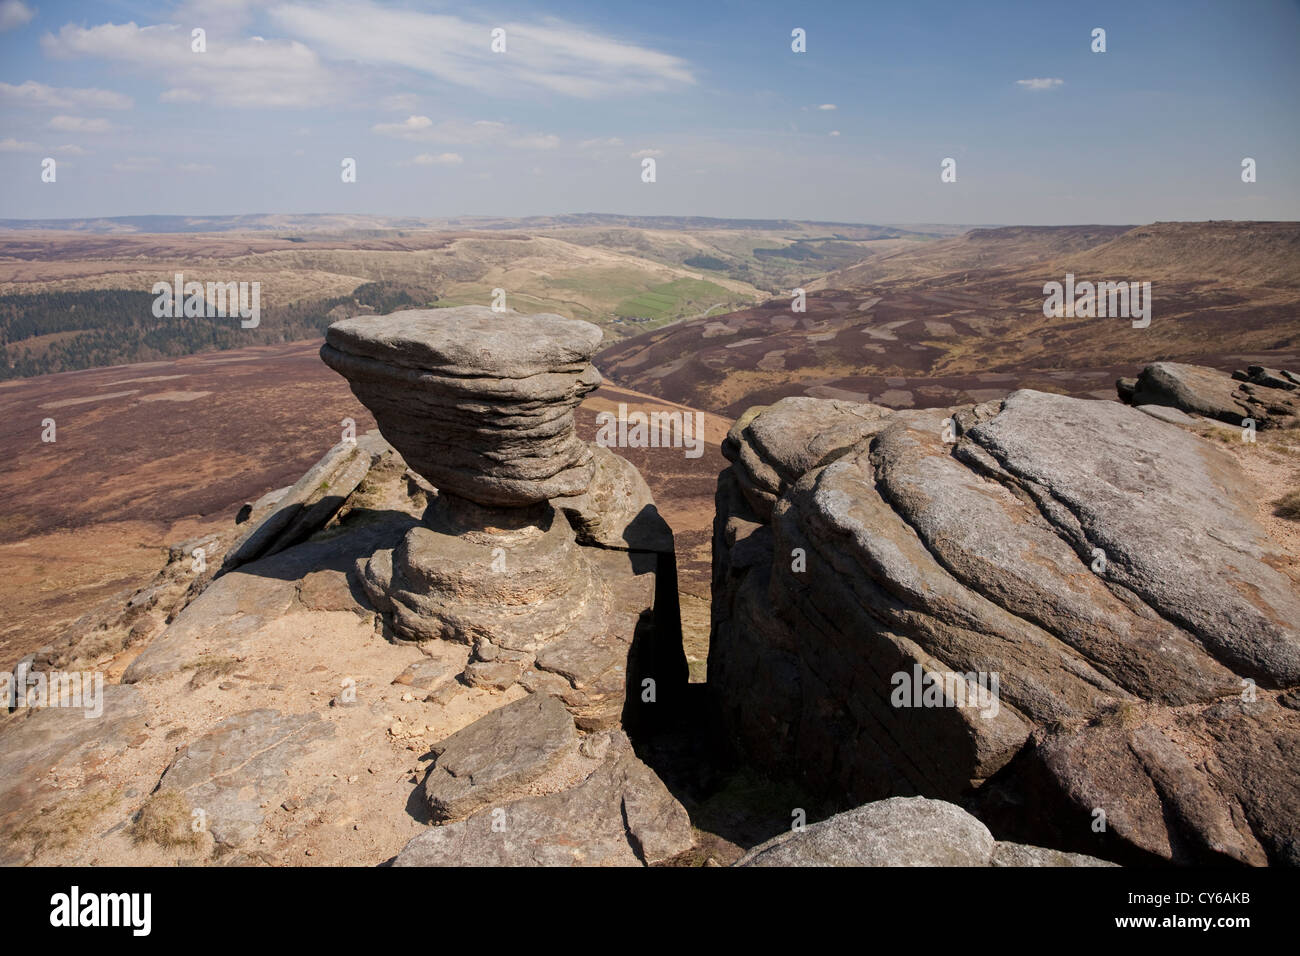 Rocks near 'The Edge' on Kinder Scout in the Peak District - Stock Image